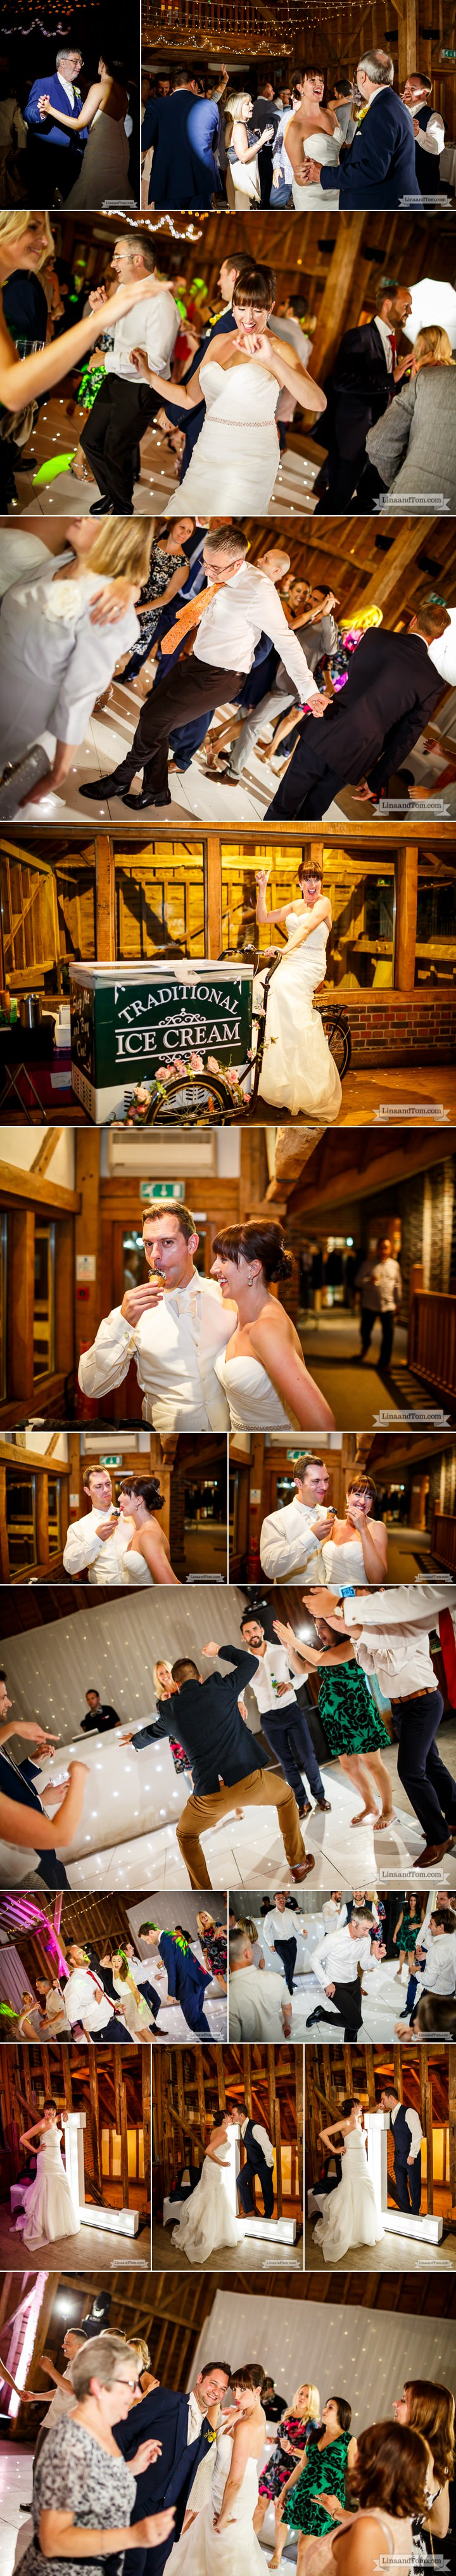 Tewin Bury Farm Wedding